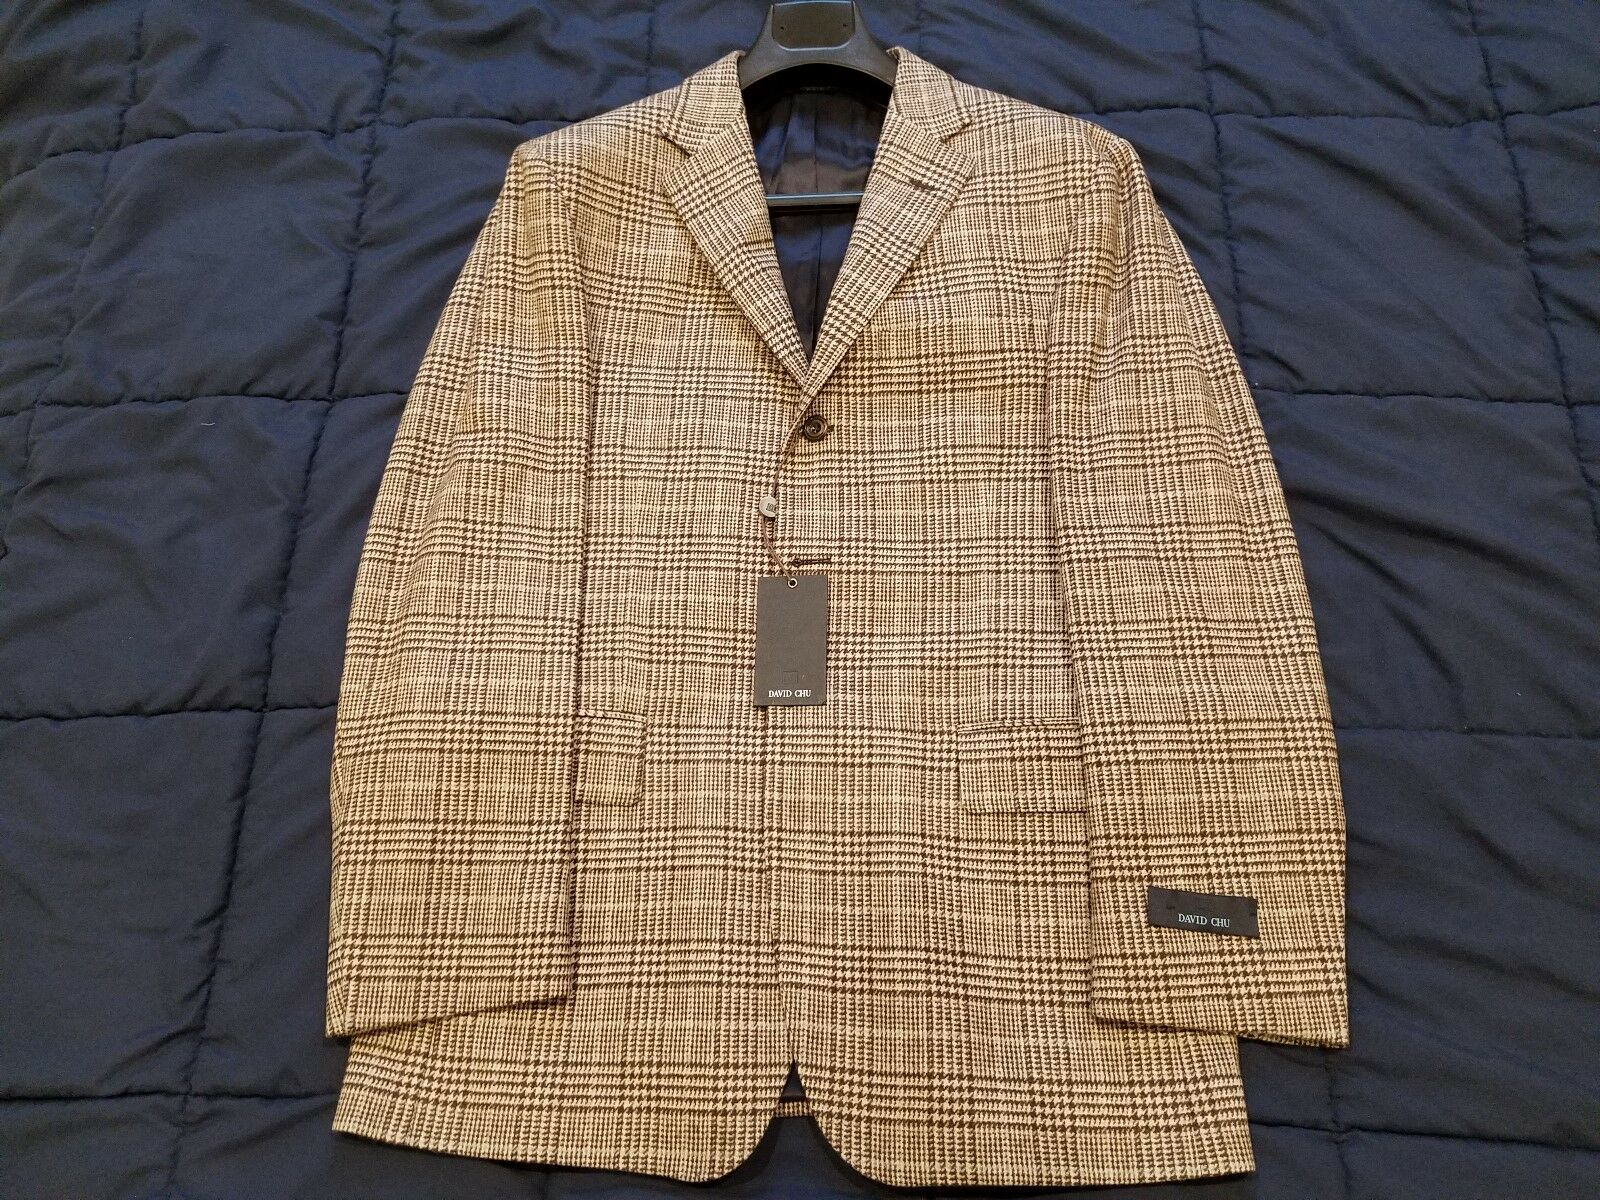 New with Tags DAVID CHU SPORT COAT Wool 3/2 Button